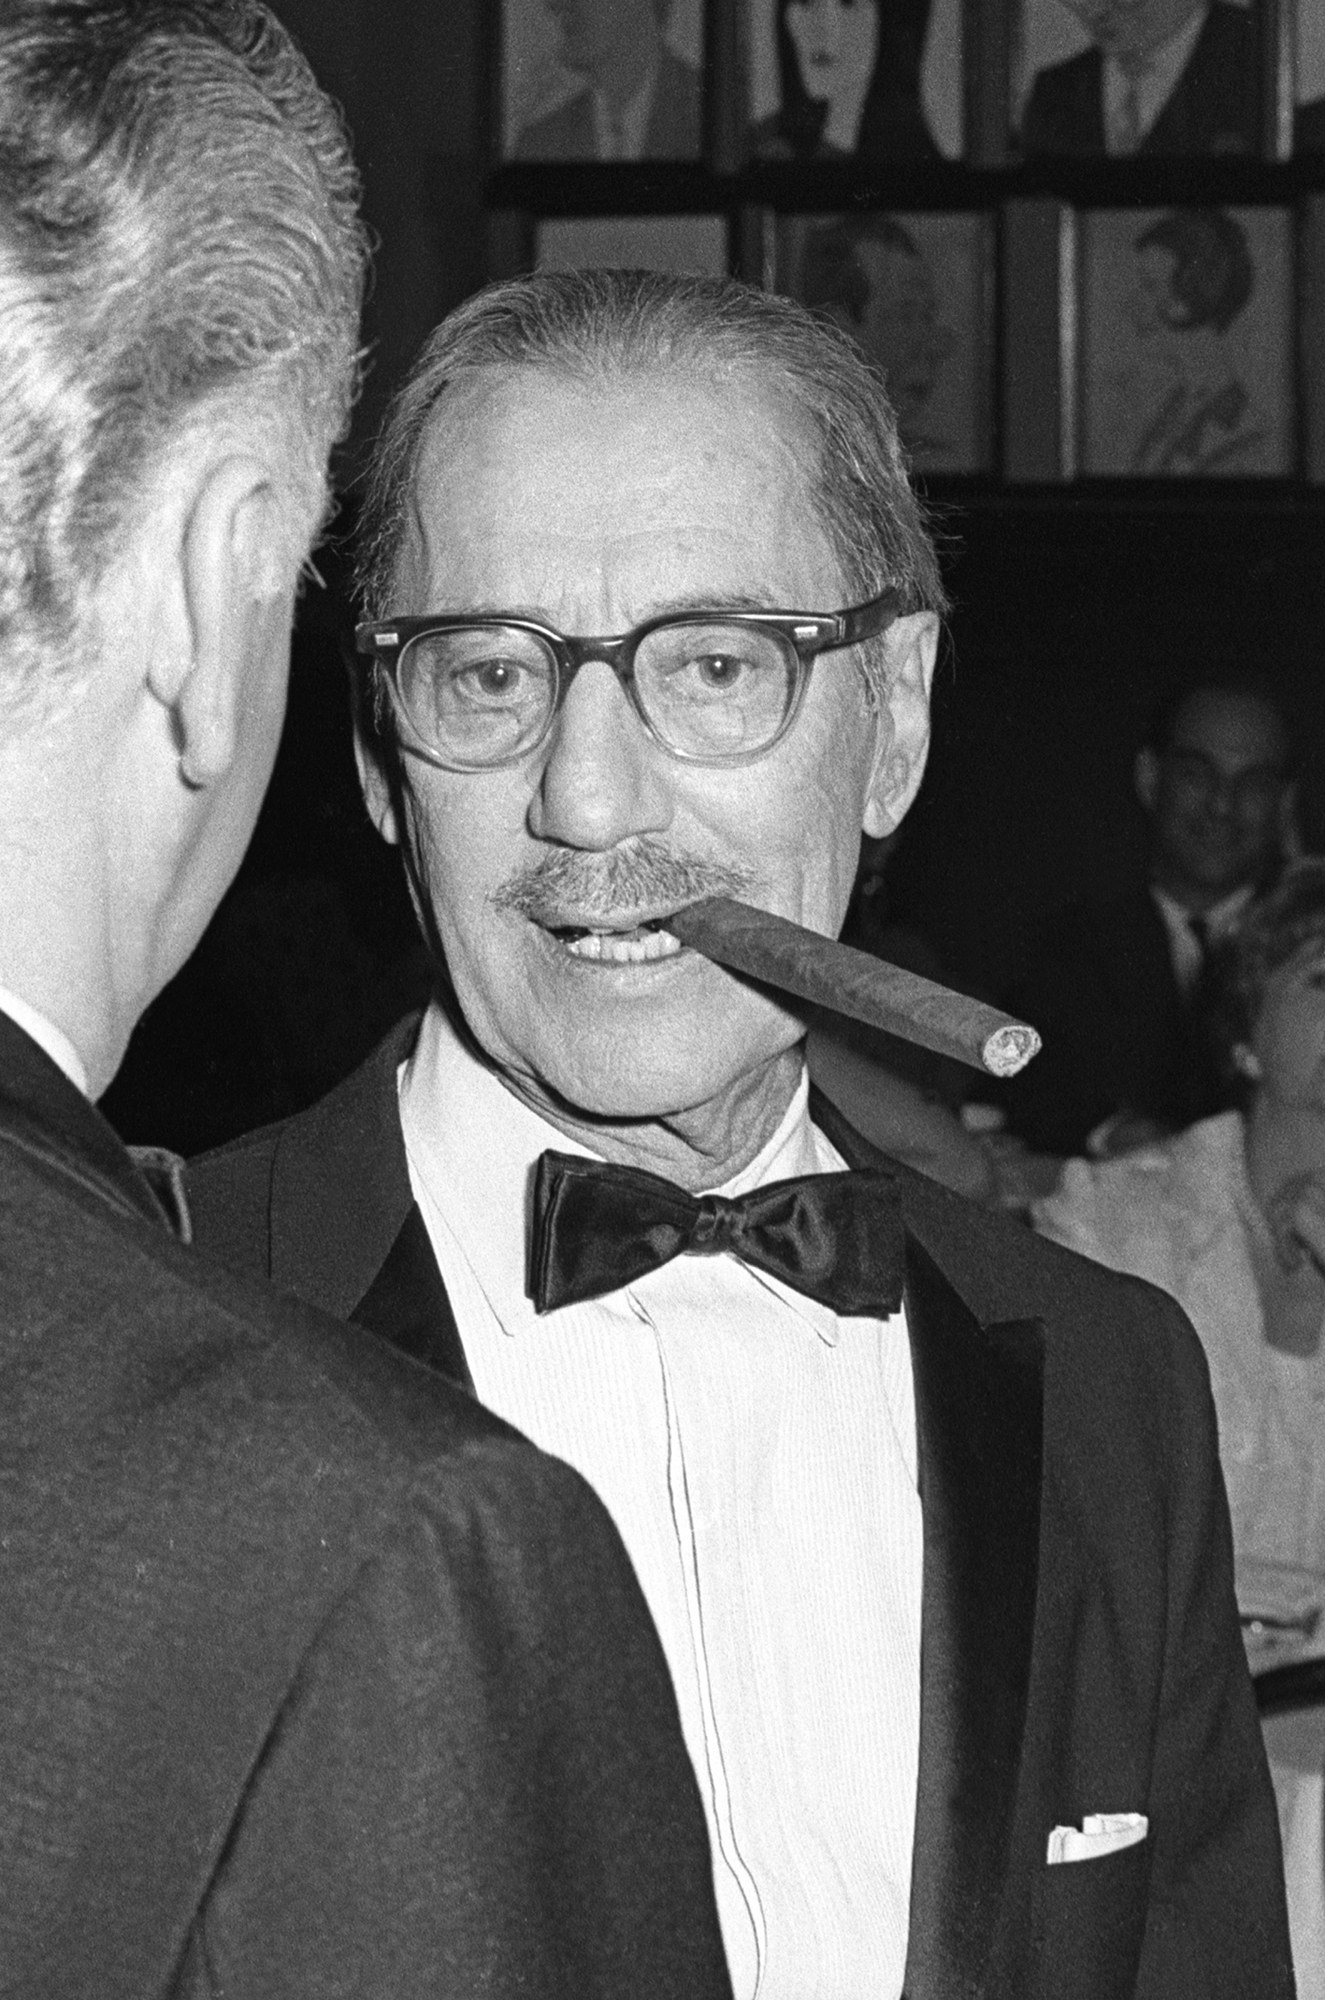 Groucho Marx dining at Sardi's, 1968